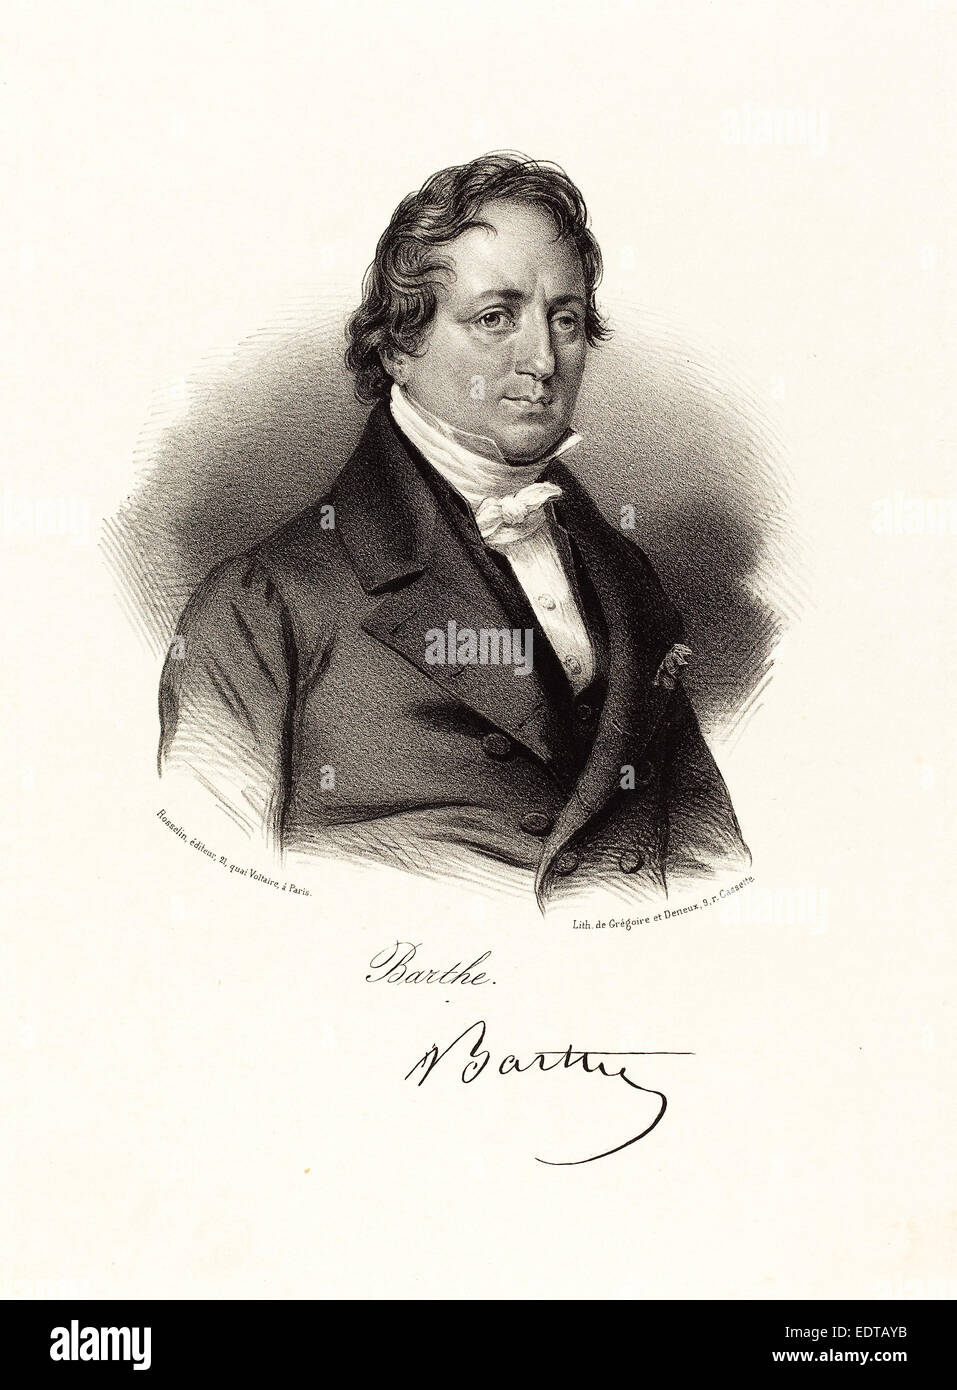 Probably French 19th Century, Barthe, lithograph - Stock Image